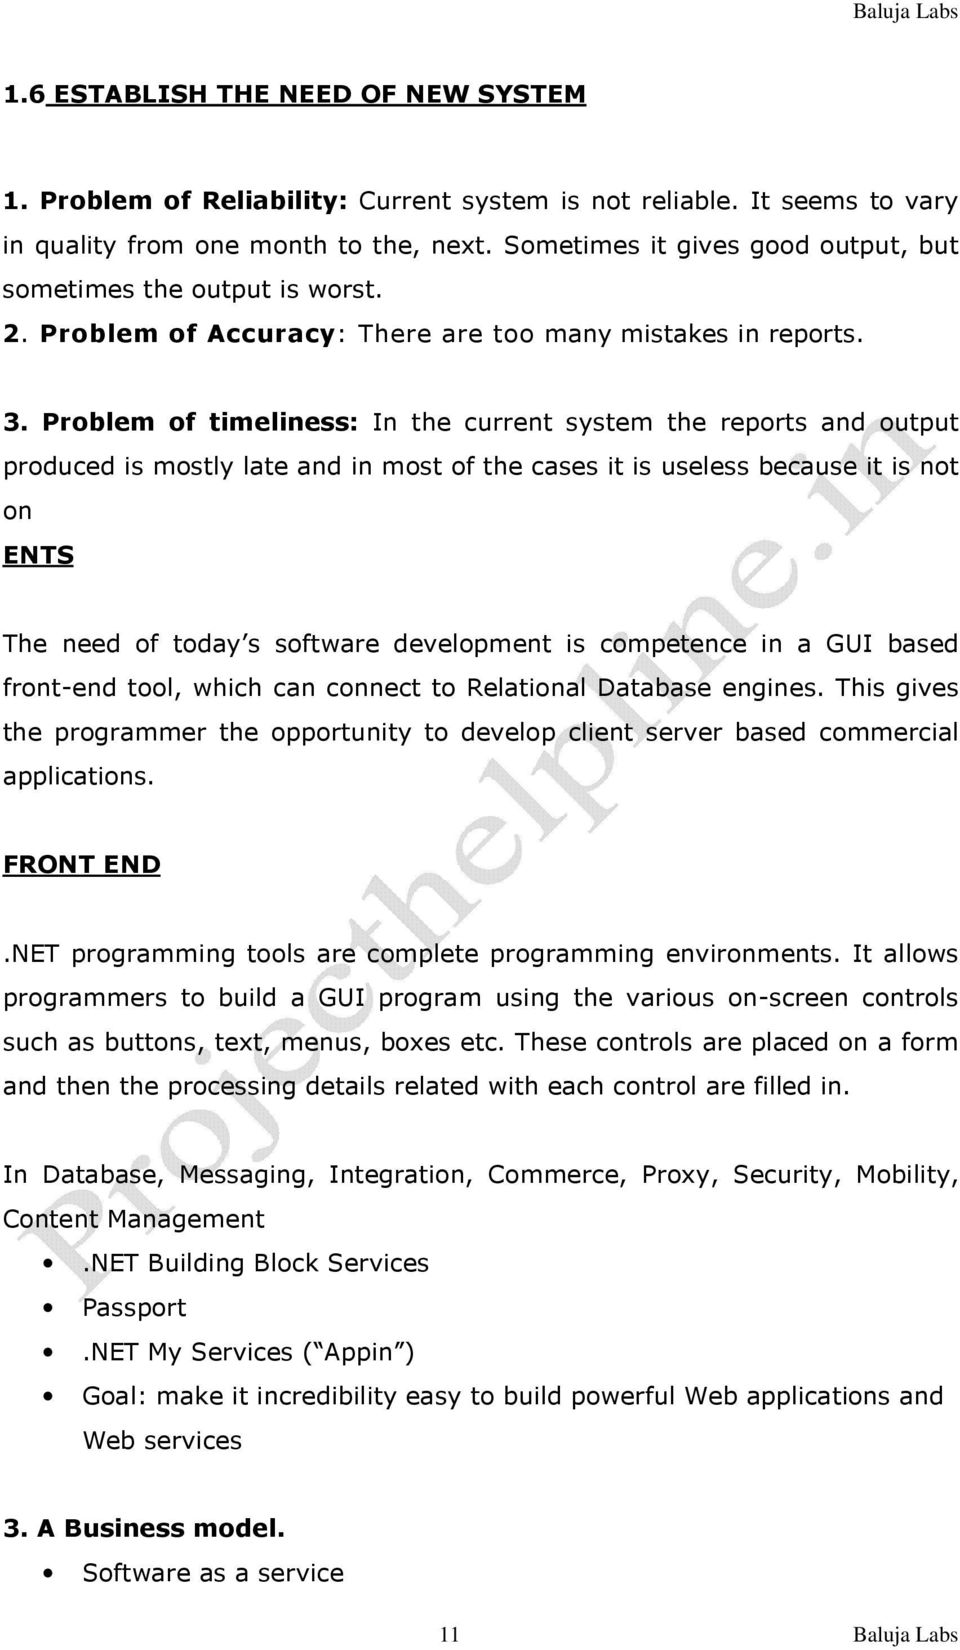 Problem of timeliness: In the current system the reports and output produced is mostly late and in most of the cases it is useless because it is not on ENTS The need of today s software development